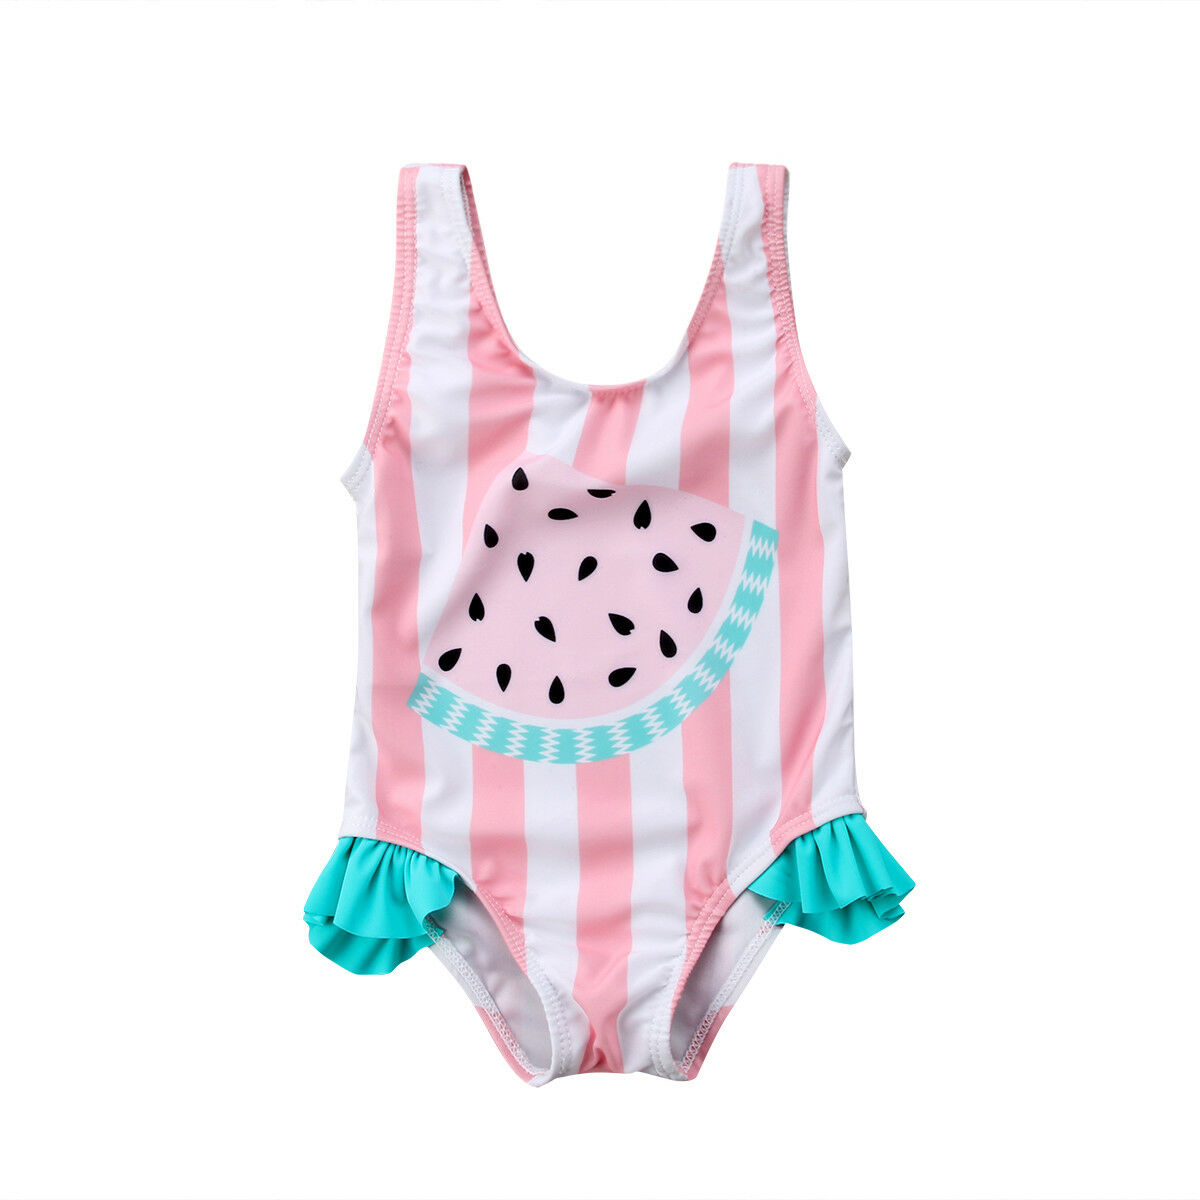 0-3Y Cute Toddler Kids Baby Girl Swimsuit Sleeveless Watermelon Striped One Pieces Swimwear Bathing Suit | healthy feet socks